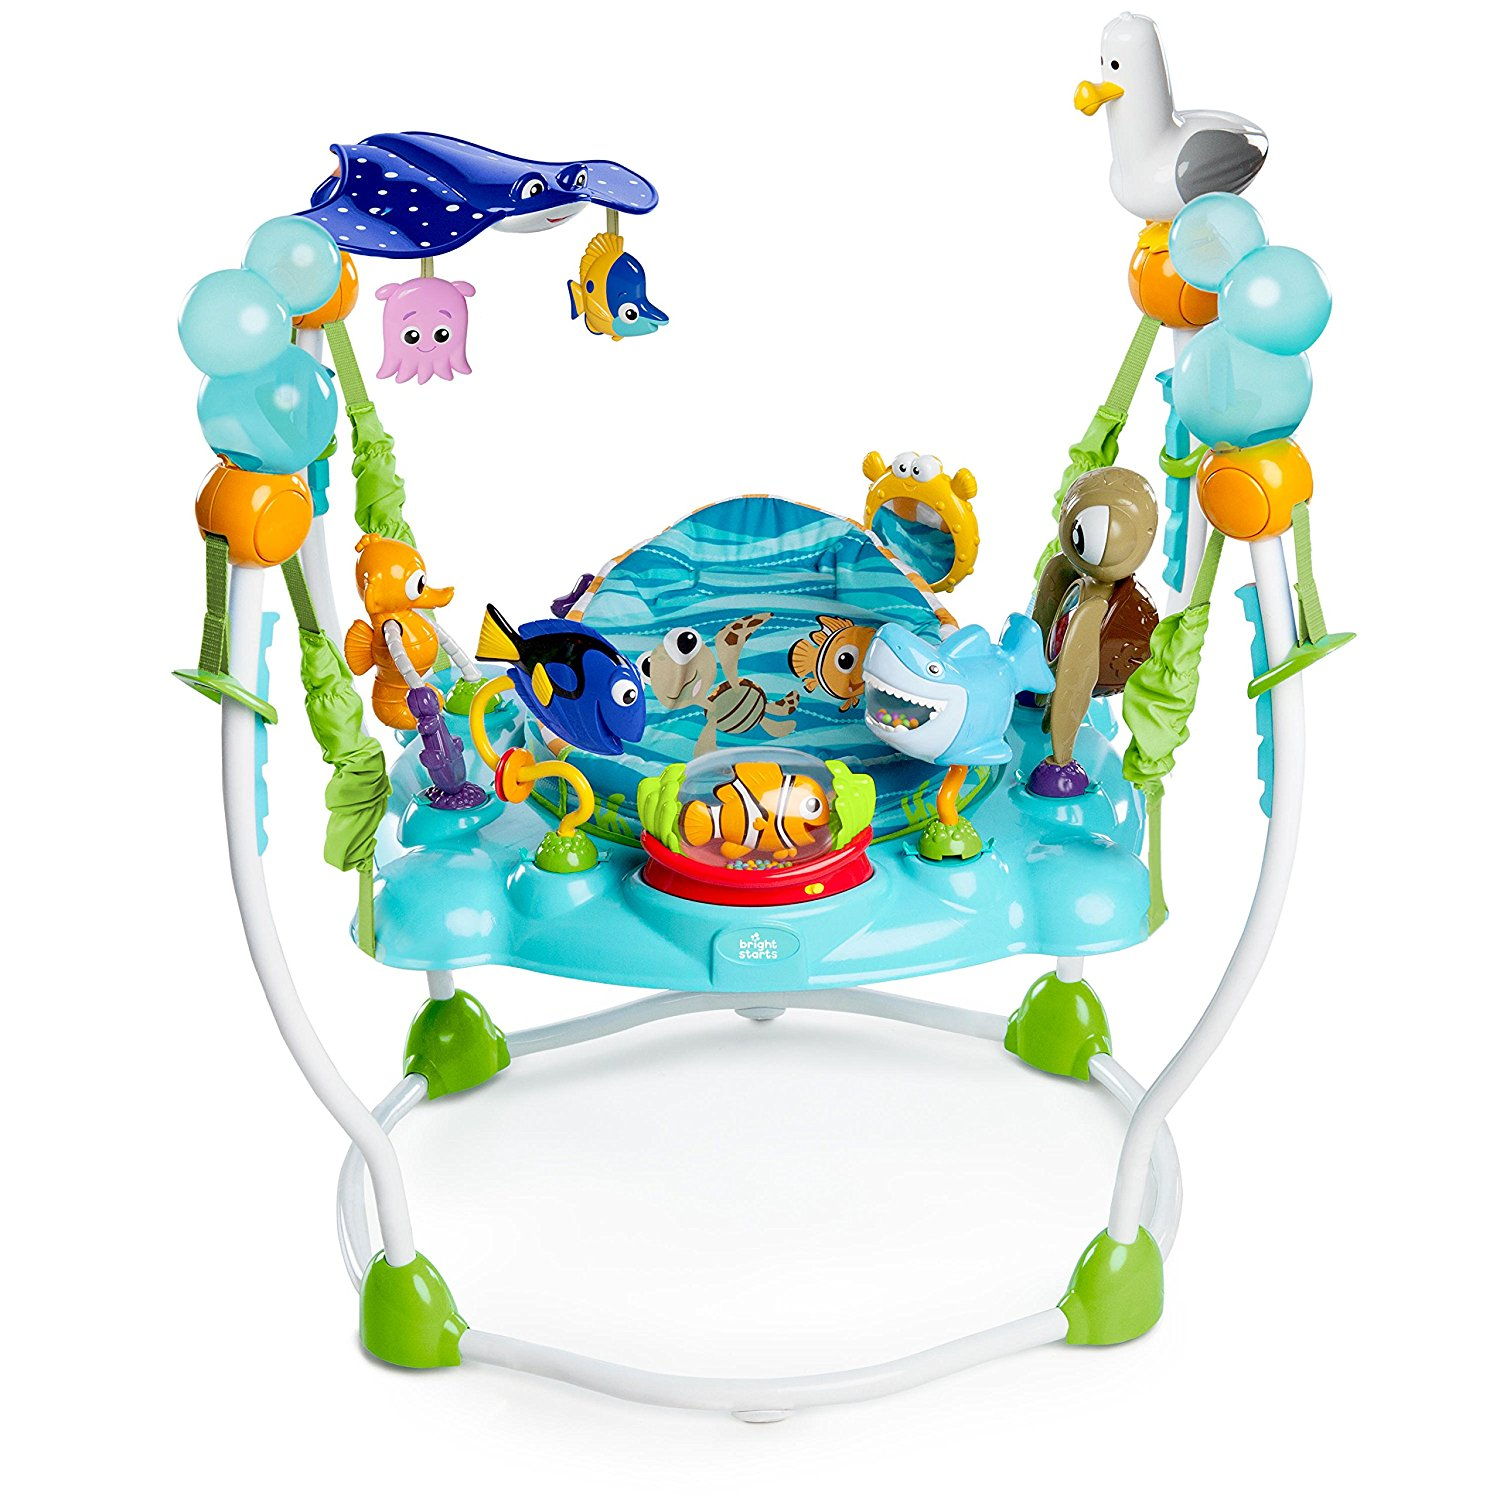 Toys Bright Starts Disney Baby Finding Nemo Oh Sea Activities Jumperoo